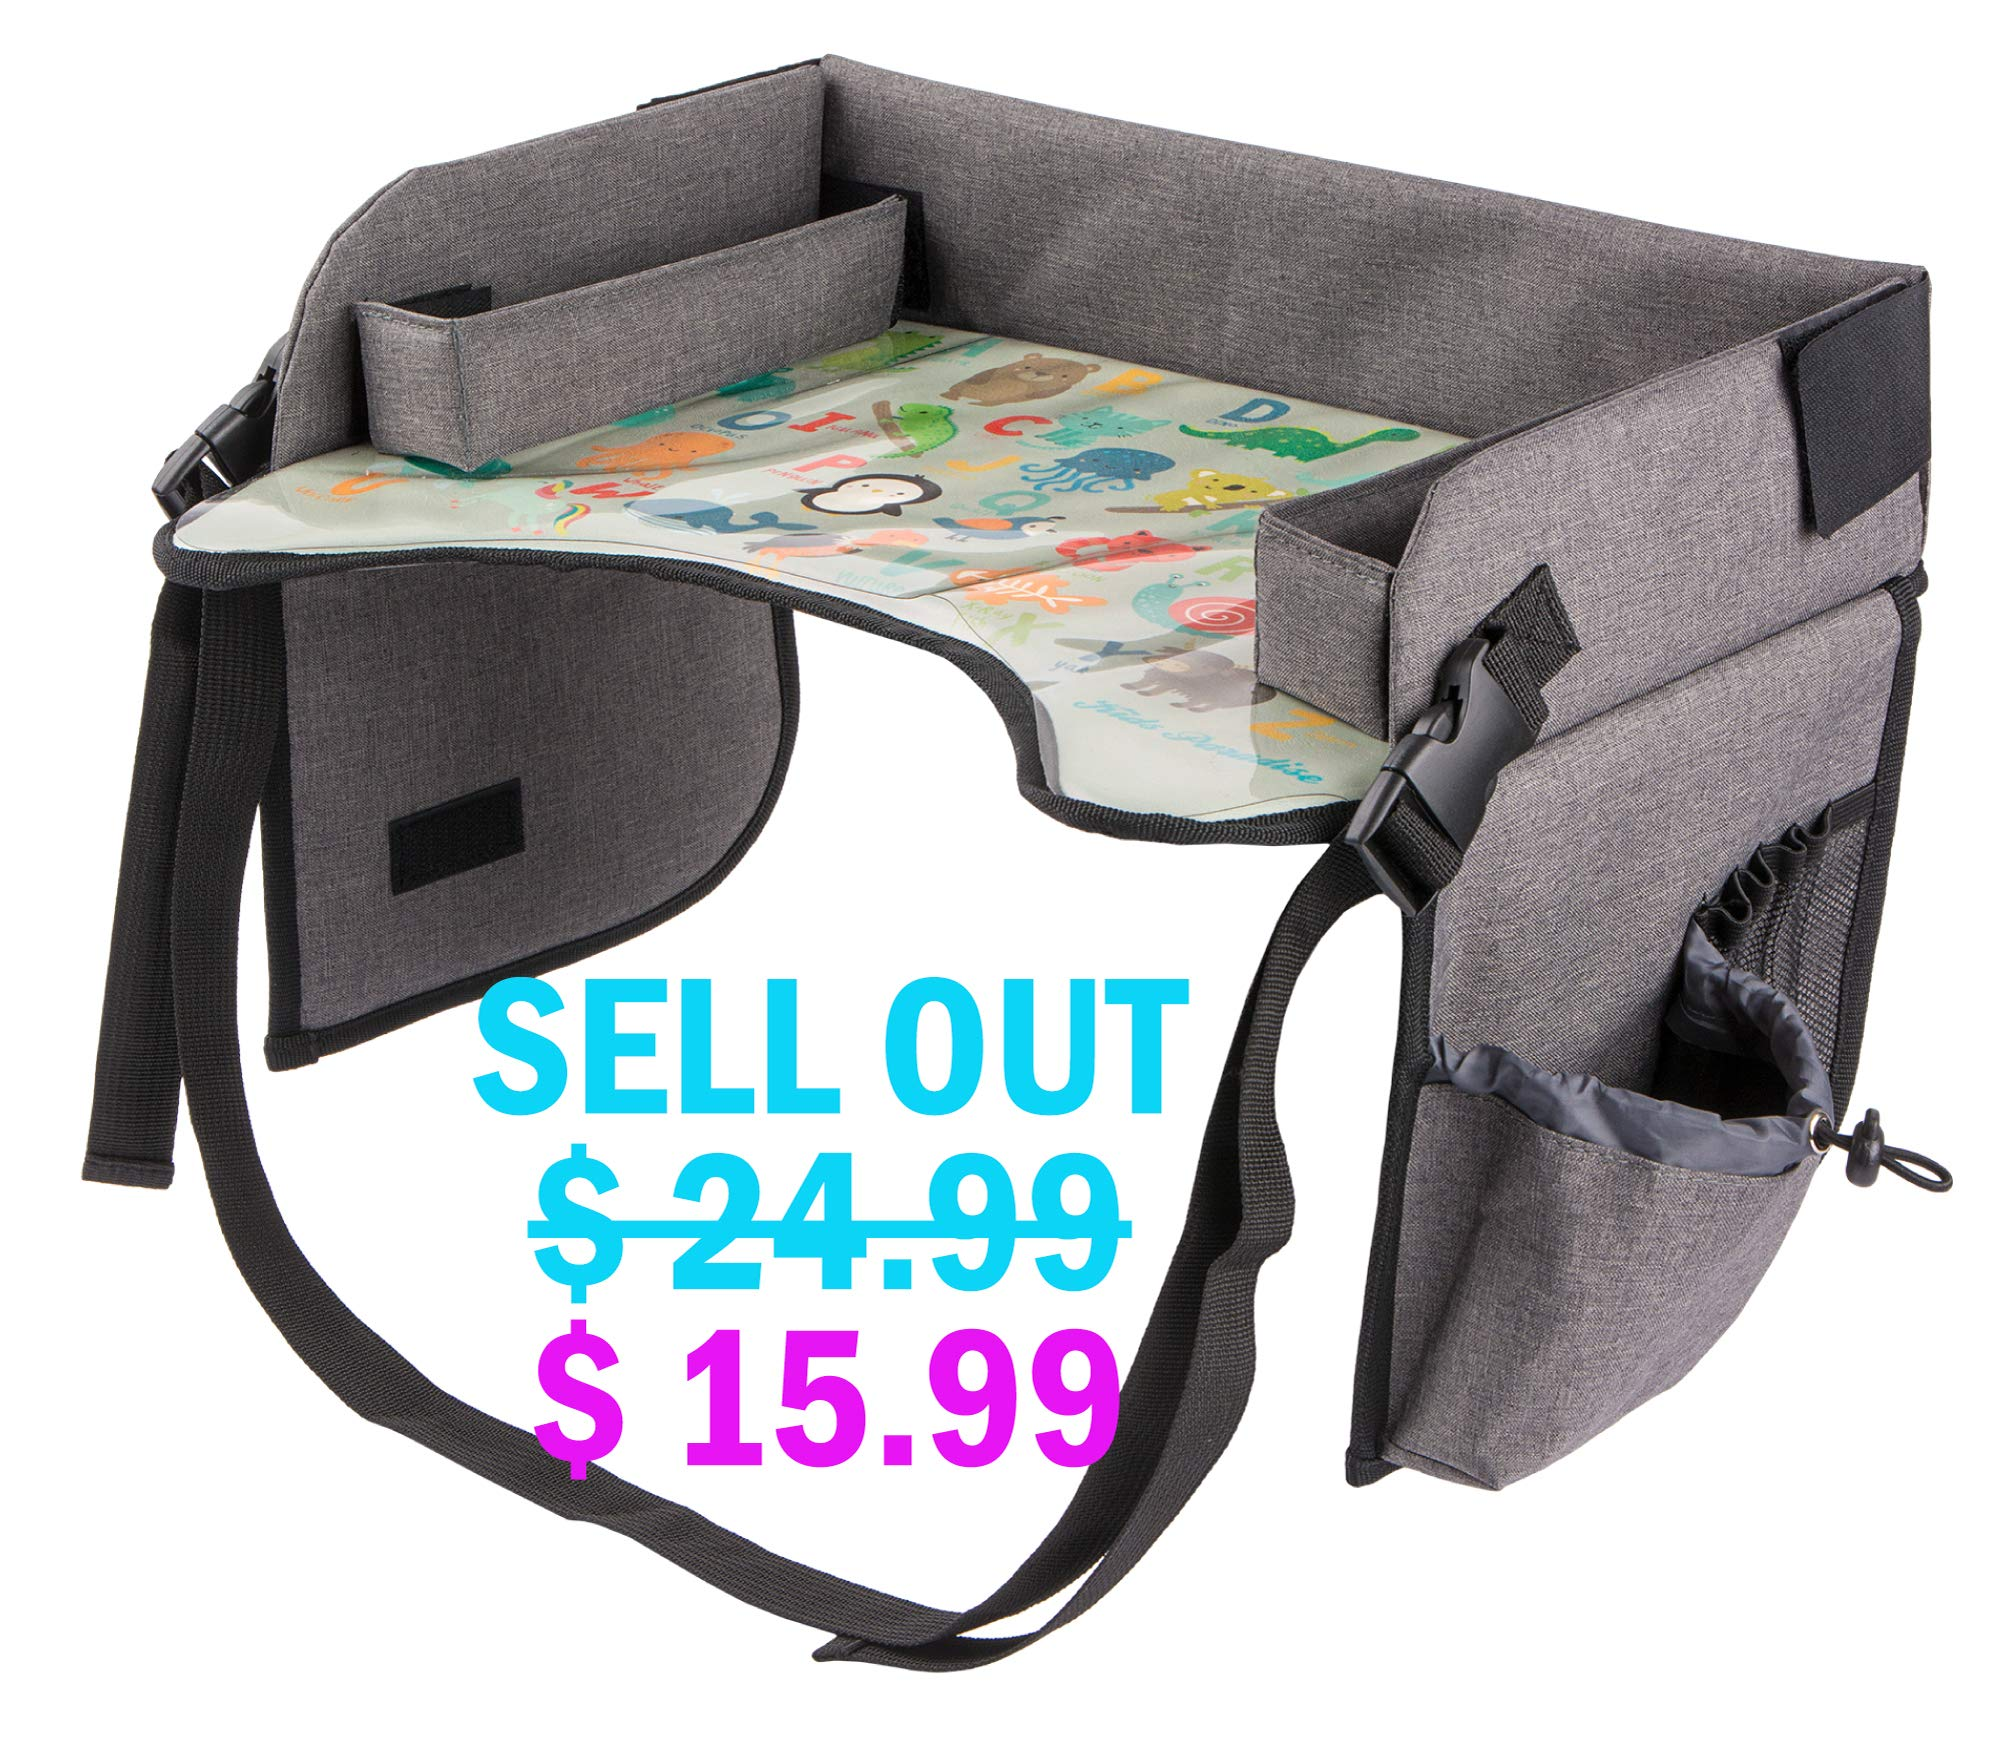 Kids Travel Tray with Erasable Surface for Car Seat, Stroller and Airplane Traveling, Infant and Toddler Snack and Play Tray, Lap Tray, Activity Tray, Table Tray with Mesh Organizer and Cup Holder by Kids Paradise